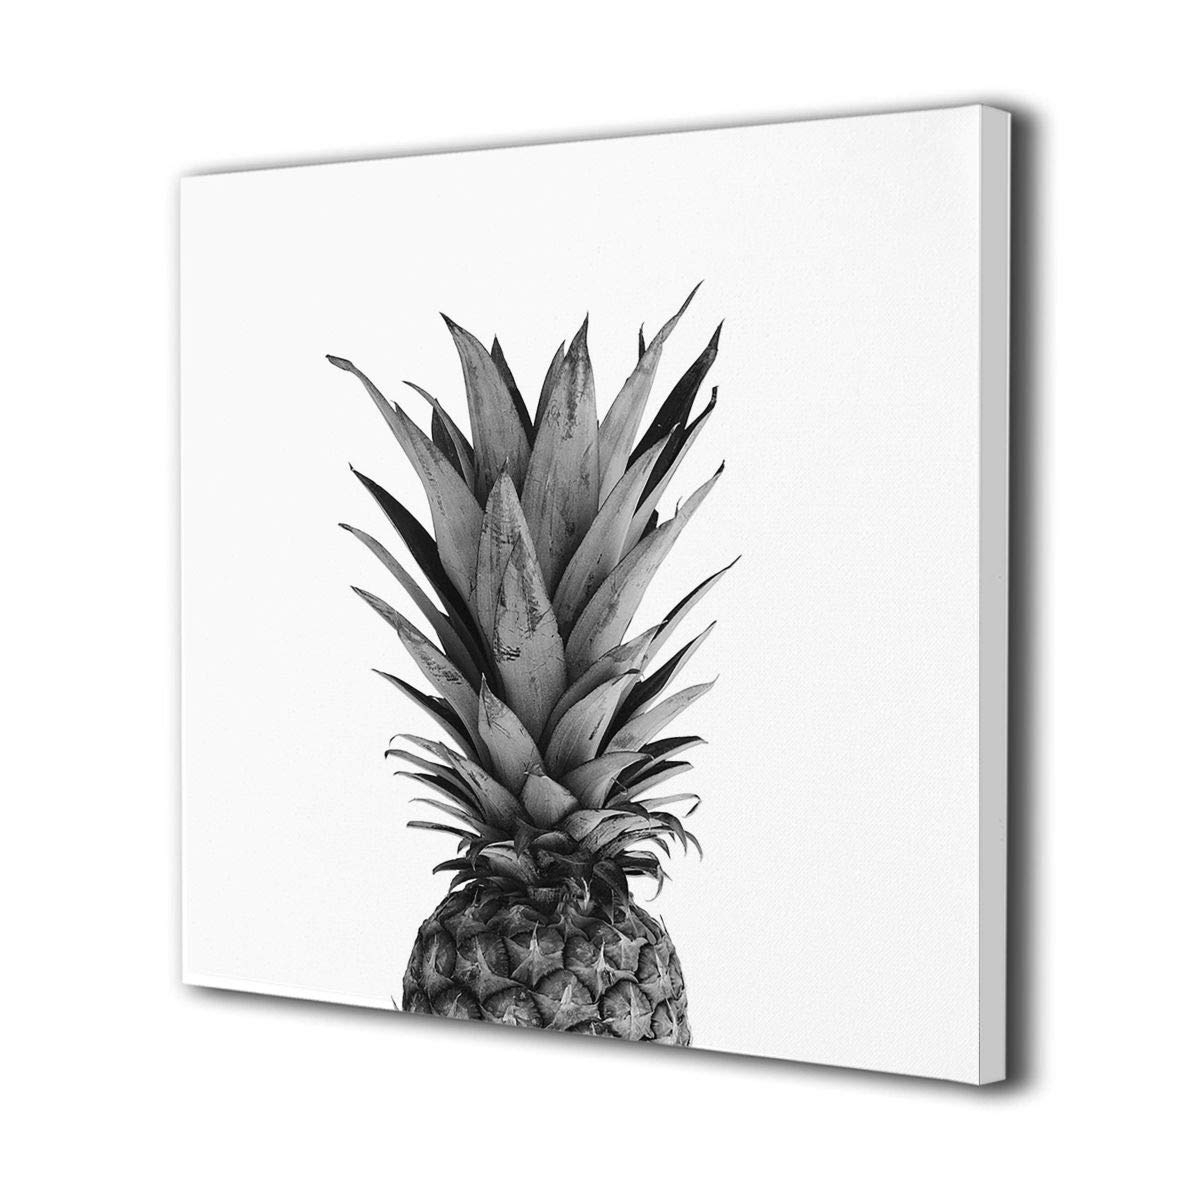 Pineapple Wall Decor With Regard To Preferred Amazon: Alan Art Pineapple Wall Decor Canvas Prints Wall Art For (Gallery 18 of 20)